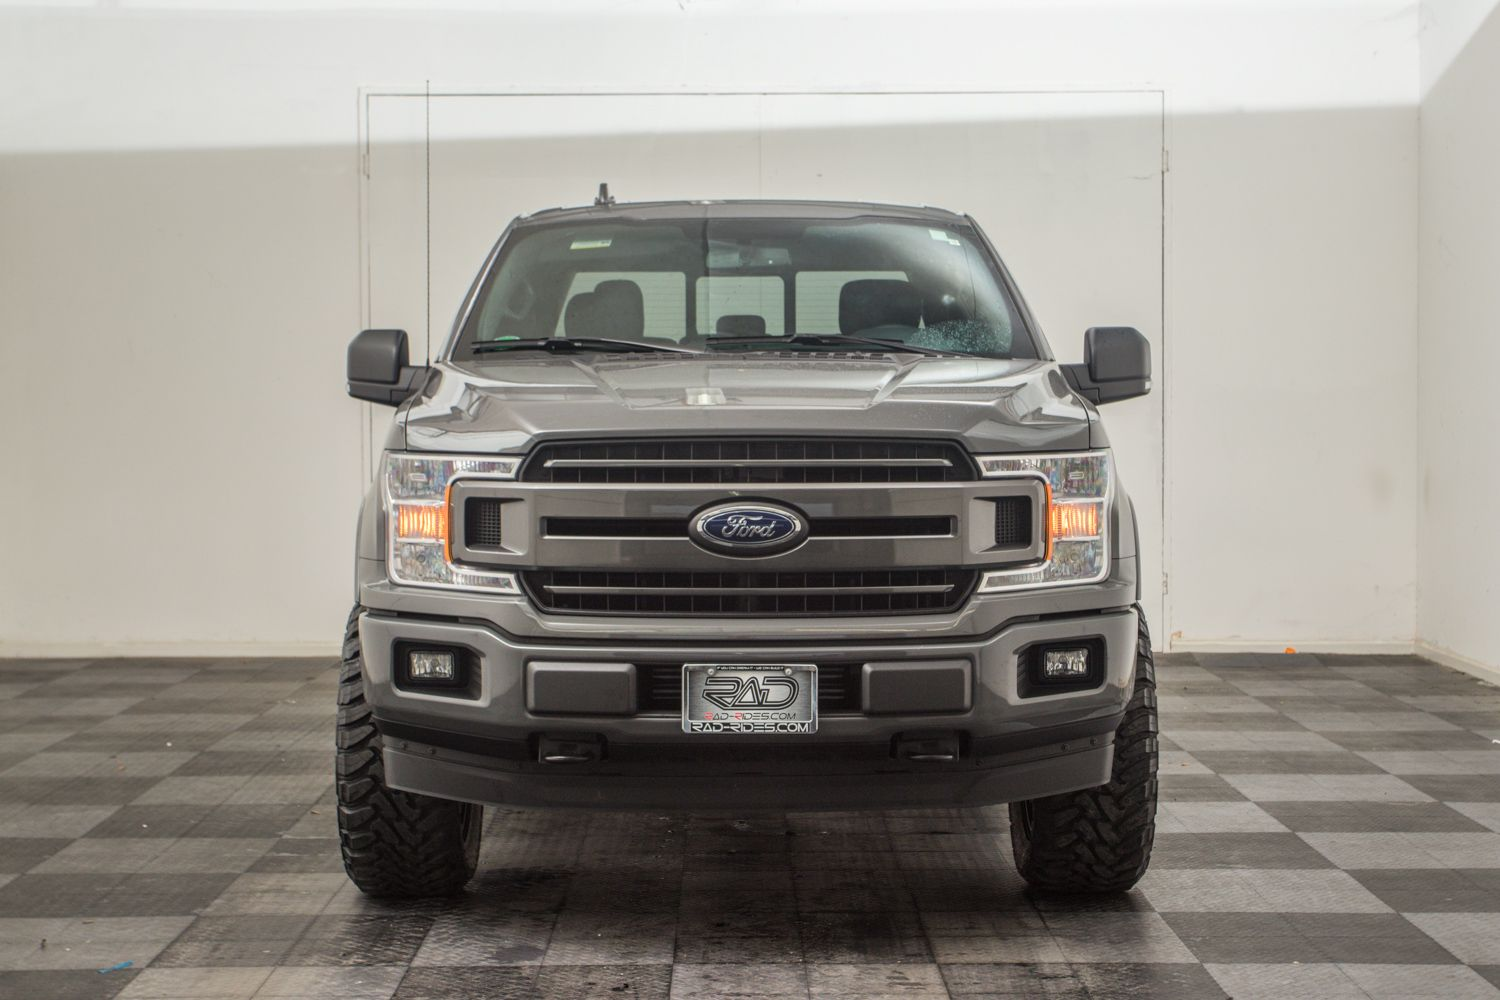 2019 Ford F150 Lead Foot Gray With Lift Level Kit Installed By Rad